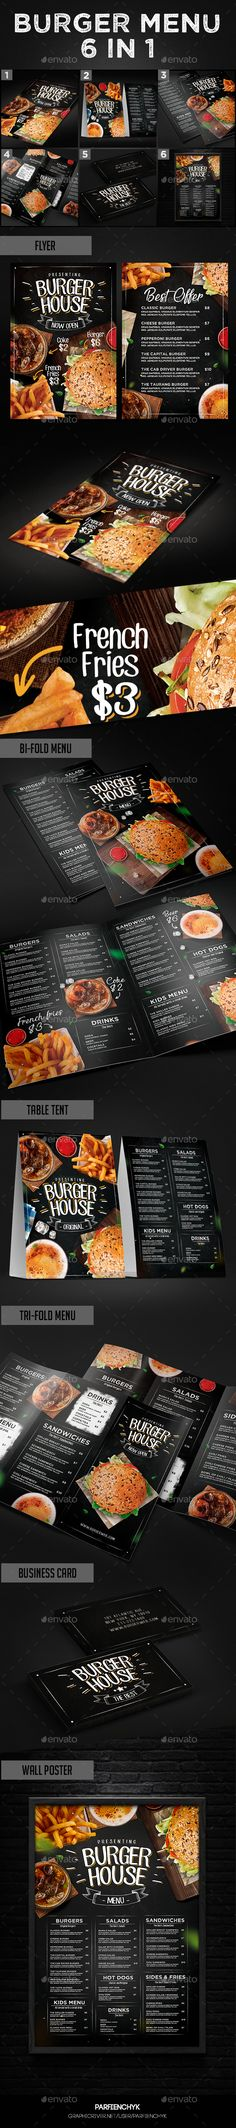 Burger Menu Set — Photoshop PSD #grill #hipster • Download ➝ https://graphicriver.net/item/burger-menu-set/19746741?ref=pxcr